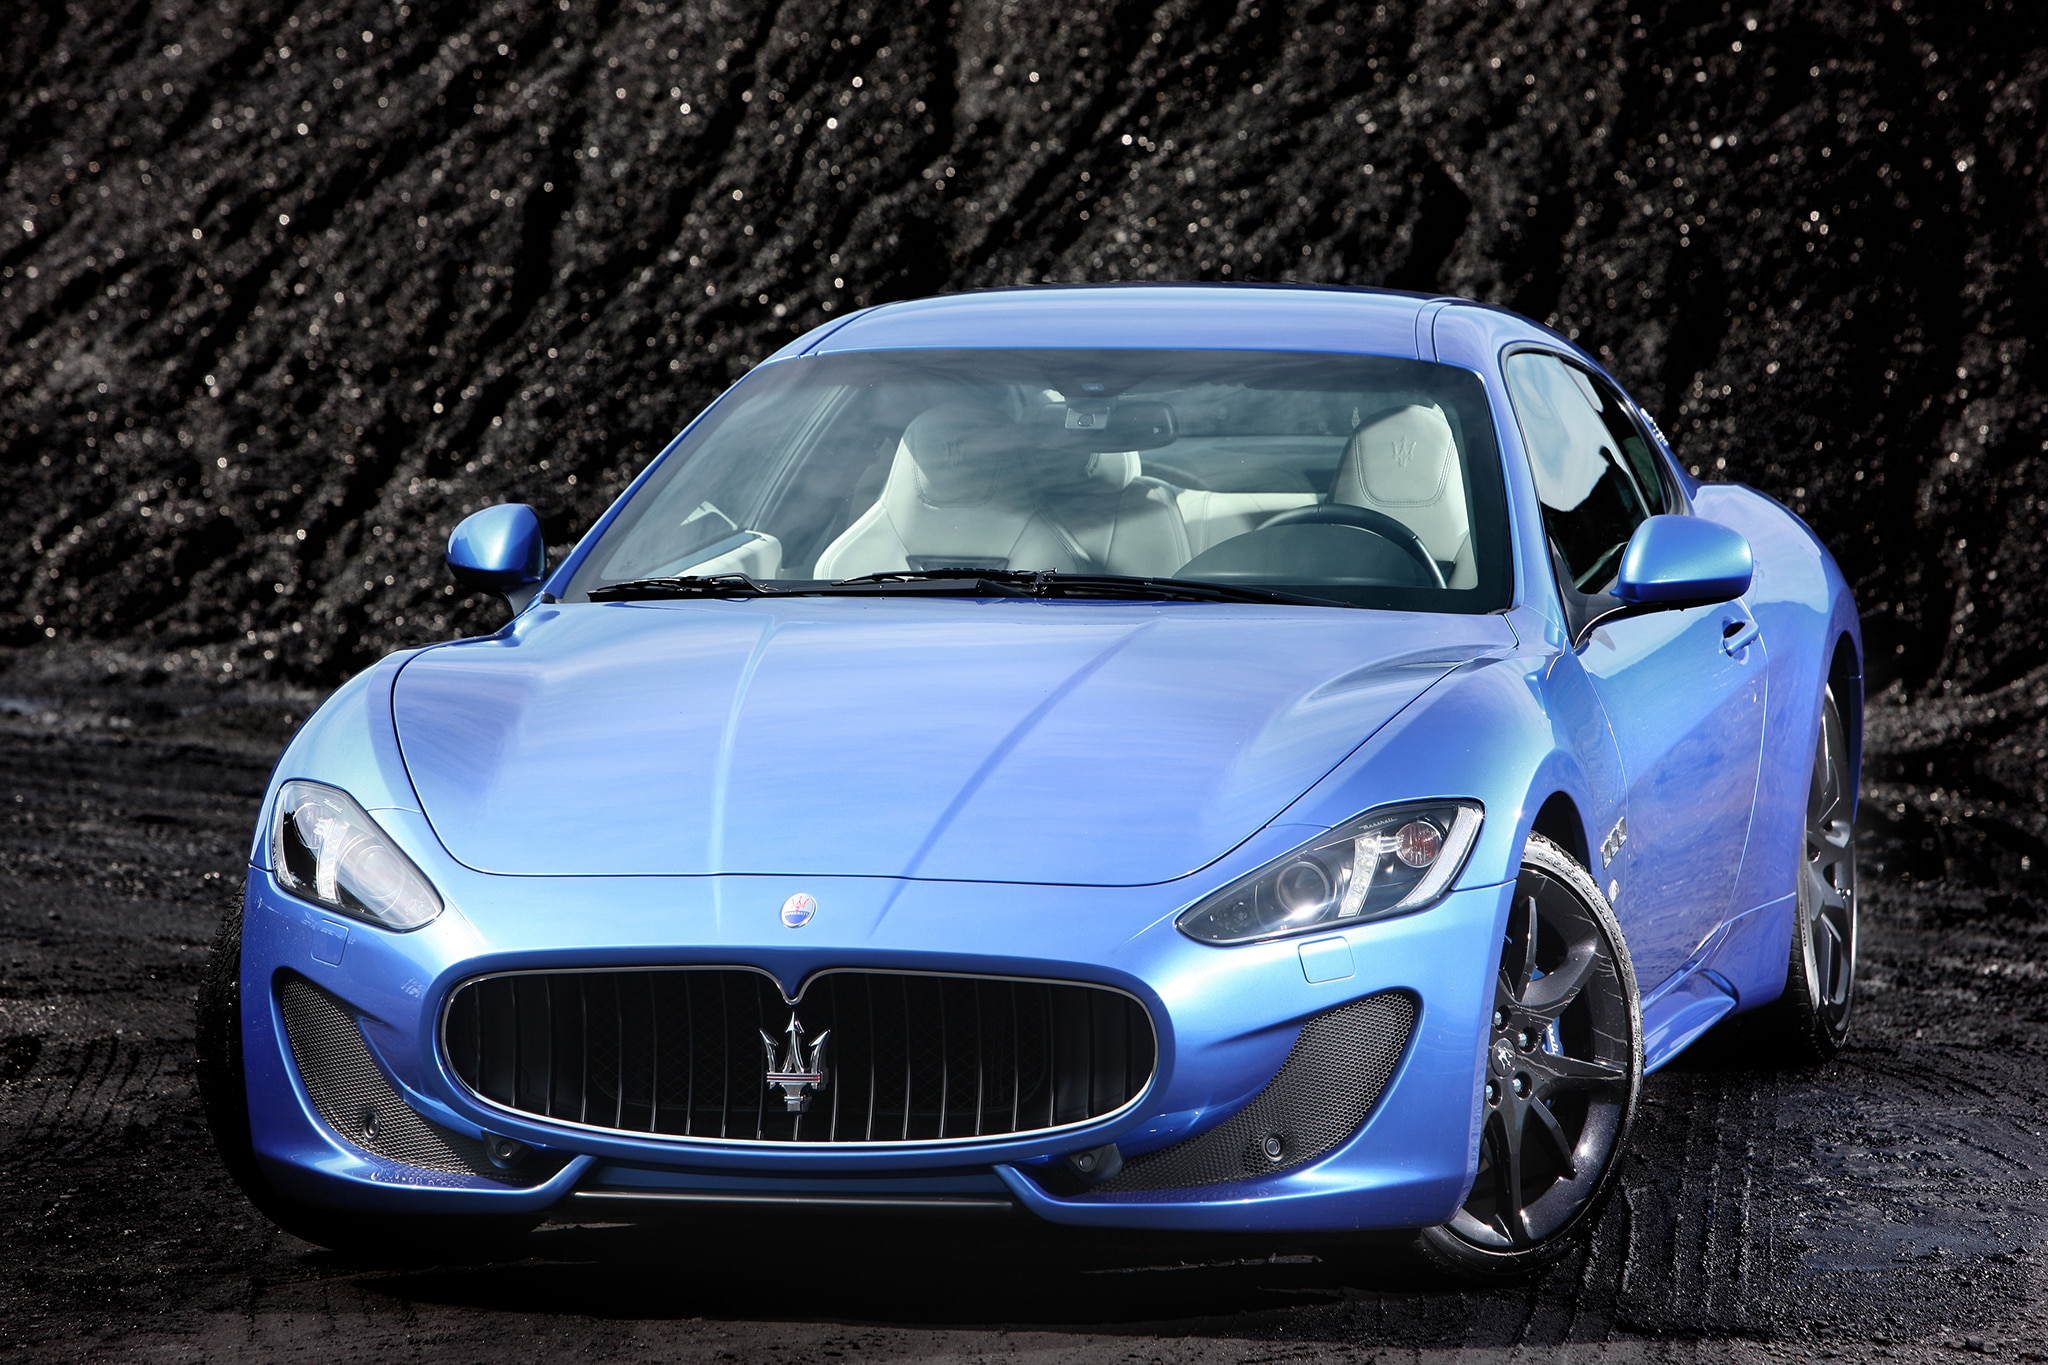 http://st.automobilemag.com/uploads/sites/10/2015/09/2013-Maserati-GranTurismo-Sport-front-above-view.jpg